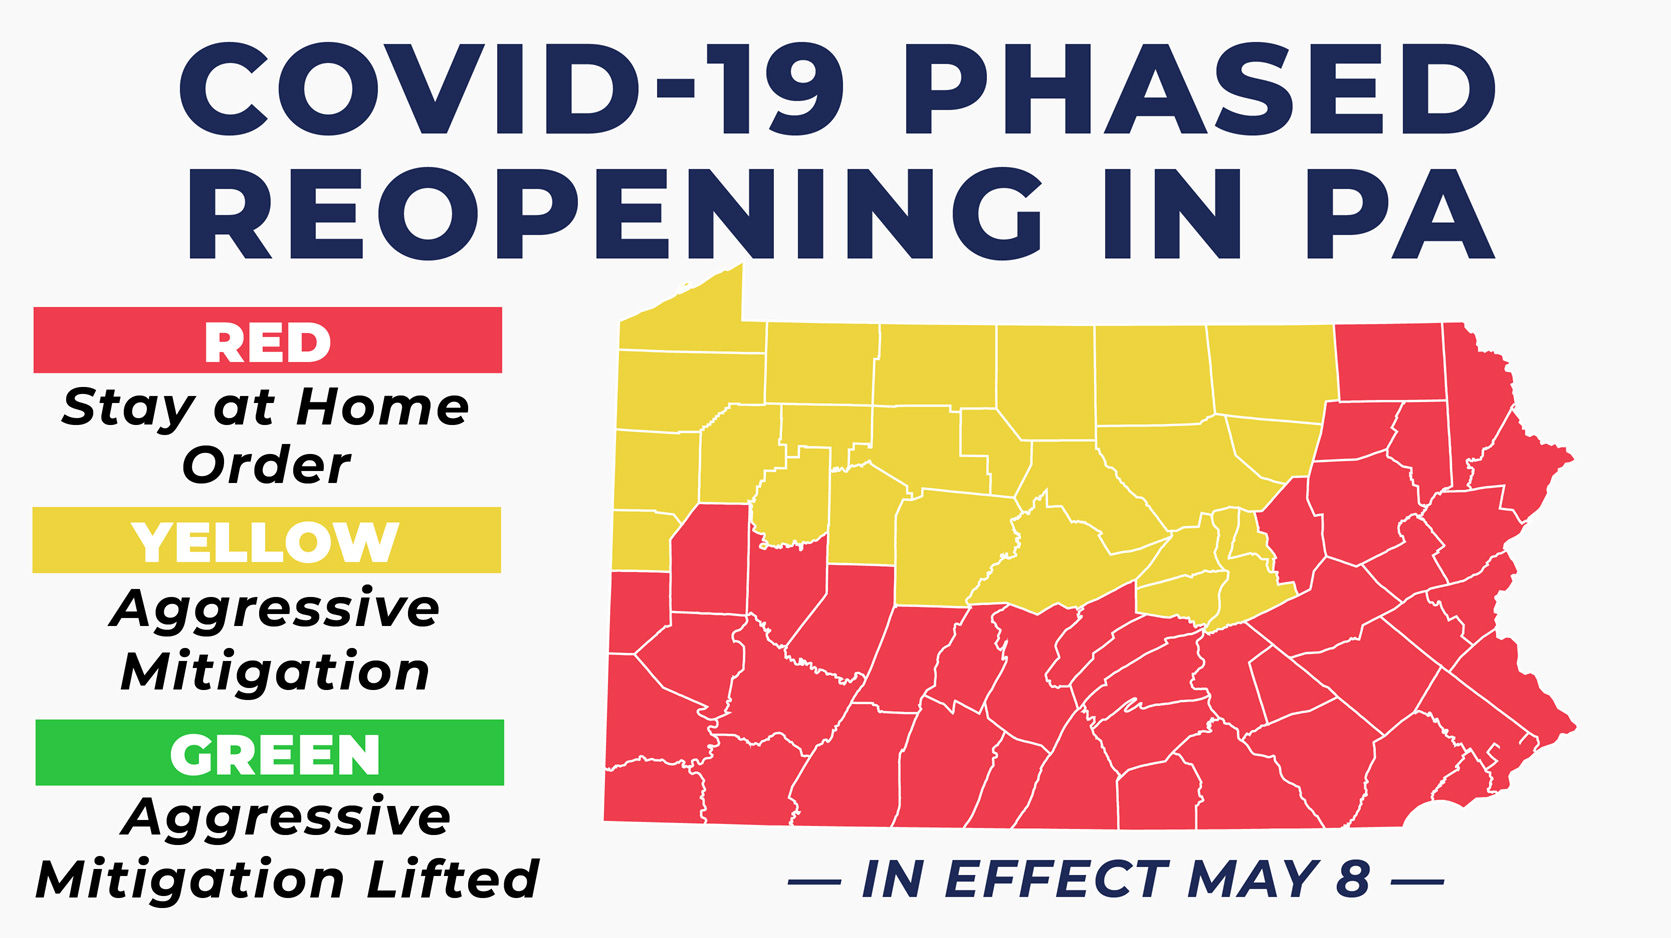 Reopening PA - Effective May 8